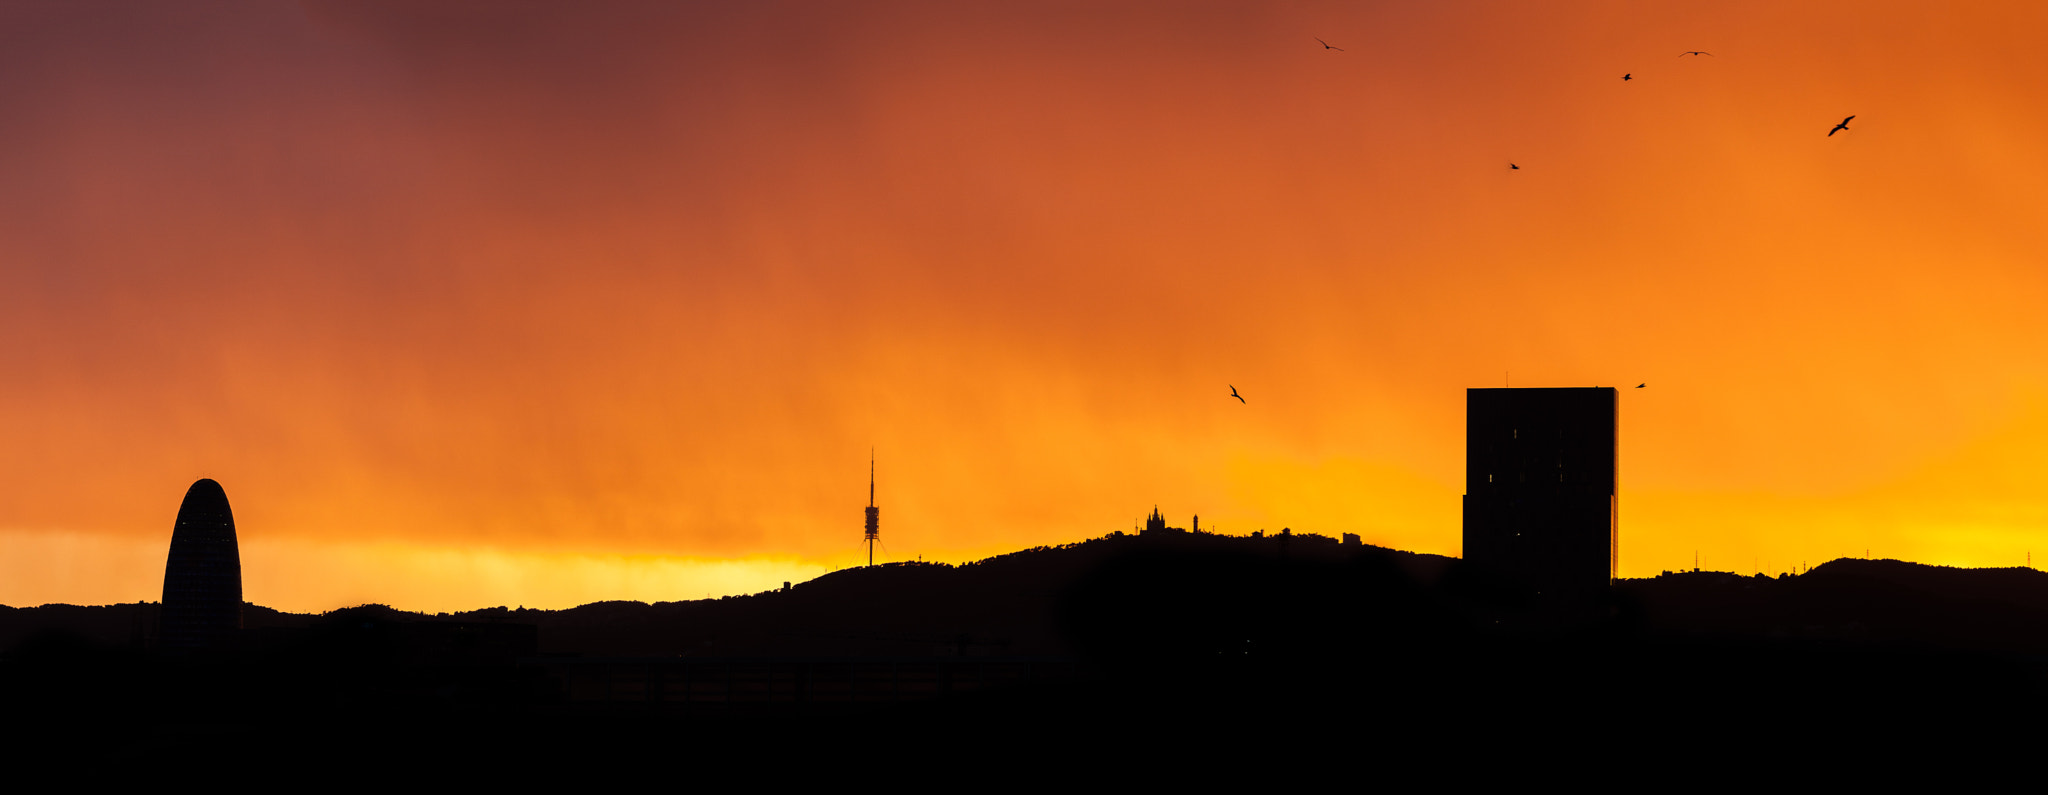 Photograph Barcelona's Sunset by Victor Garcia Castanera on 500px